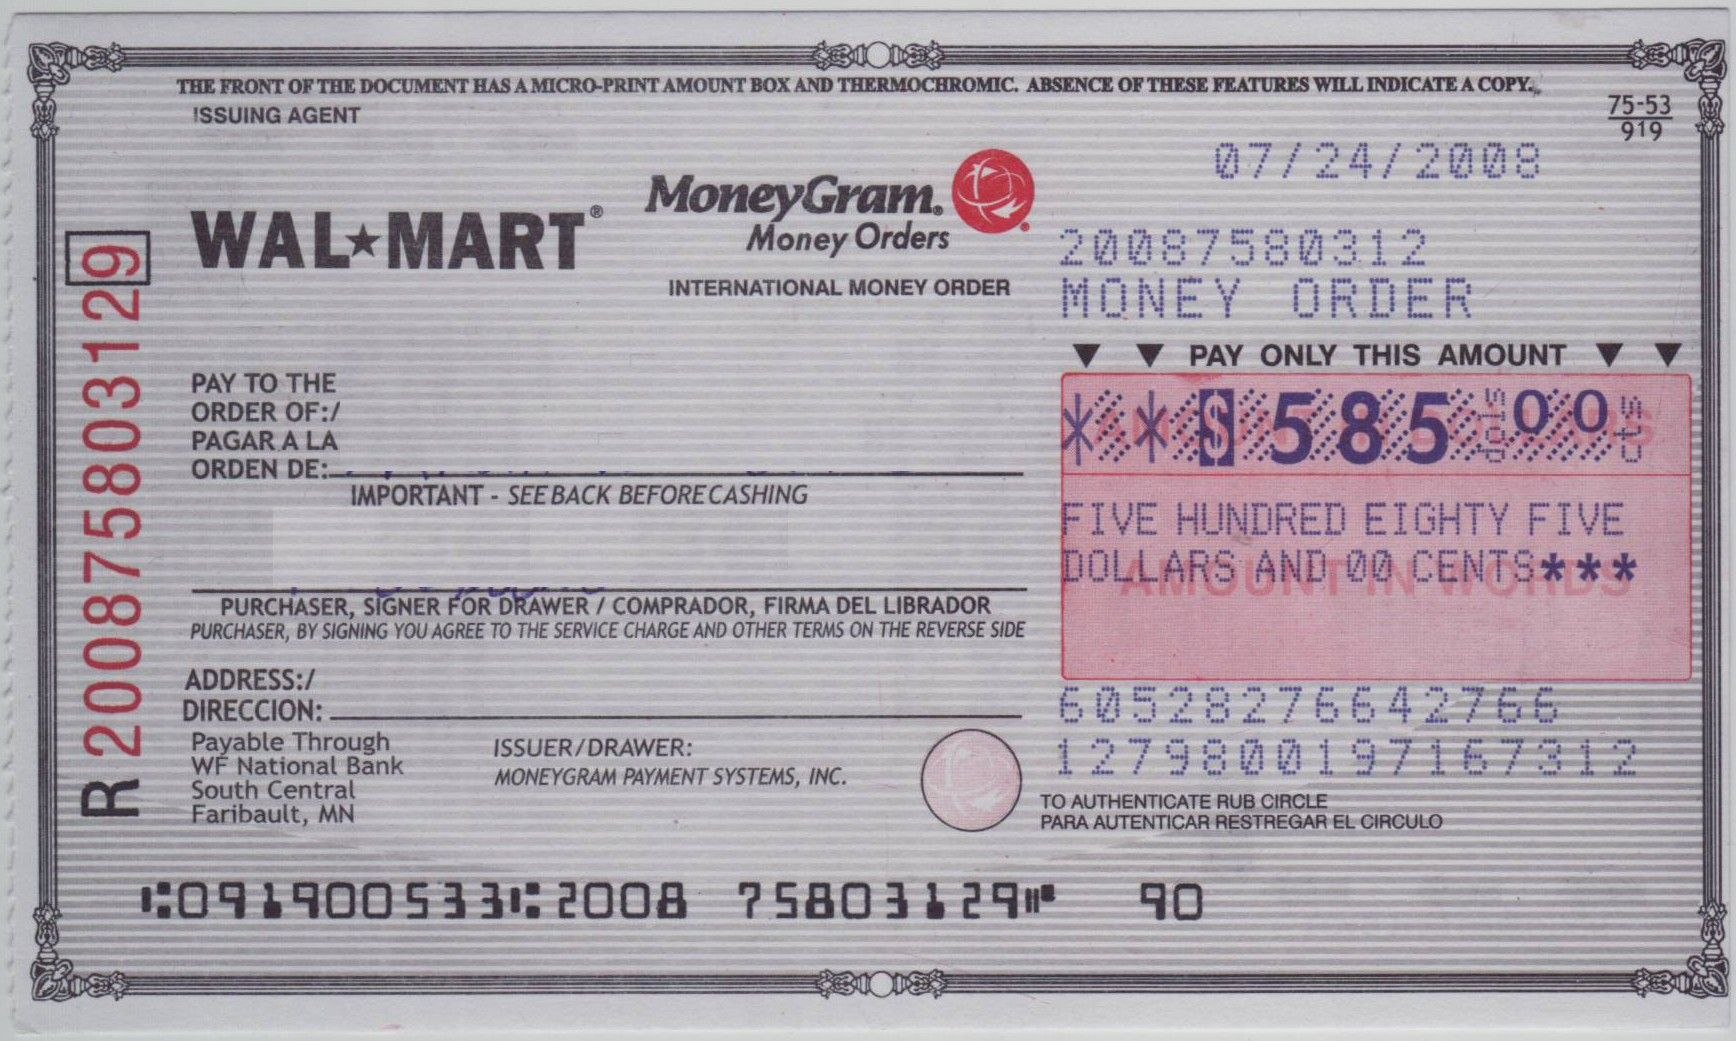 Blank Check Sample  How To Fill Out A Moneygram Money Order Inside Blank Money Order Template